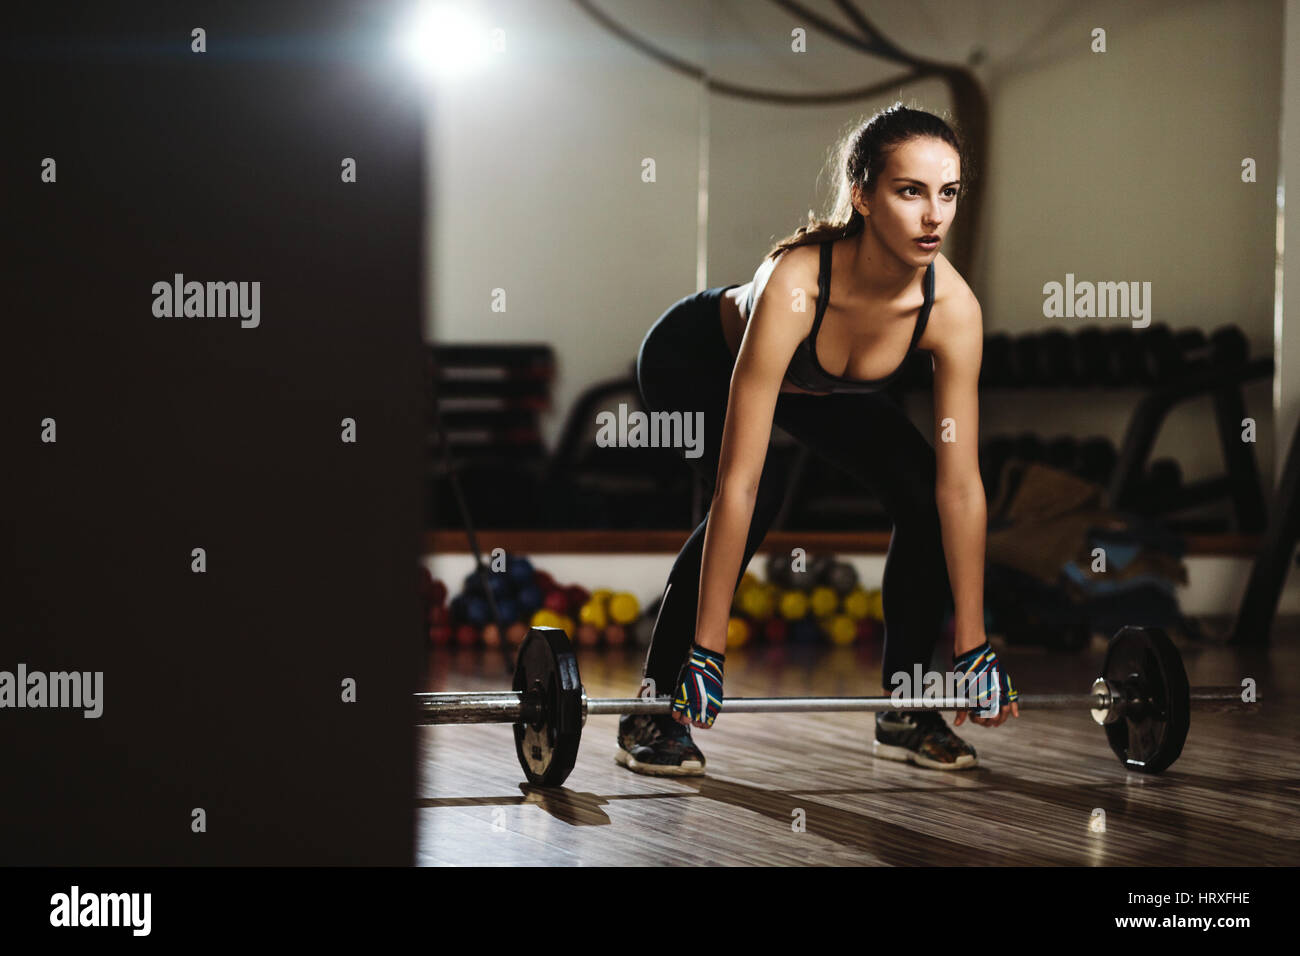 fitness woman weightlifting deadlift. Fitness model girl weightlifting in gym. - Stock Image